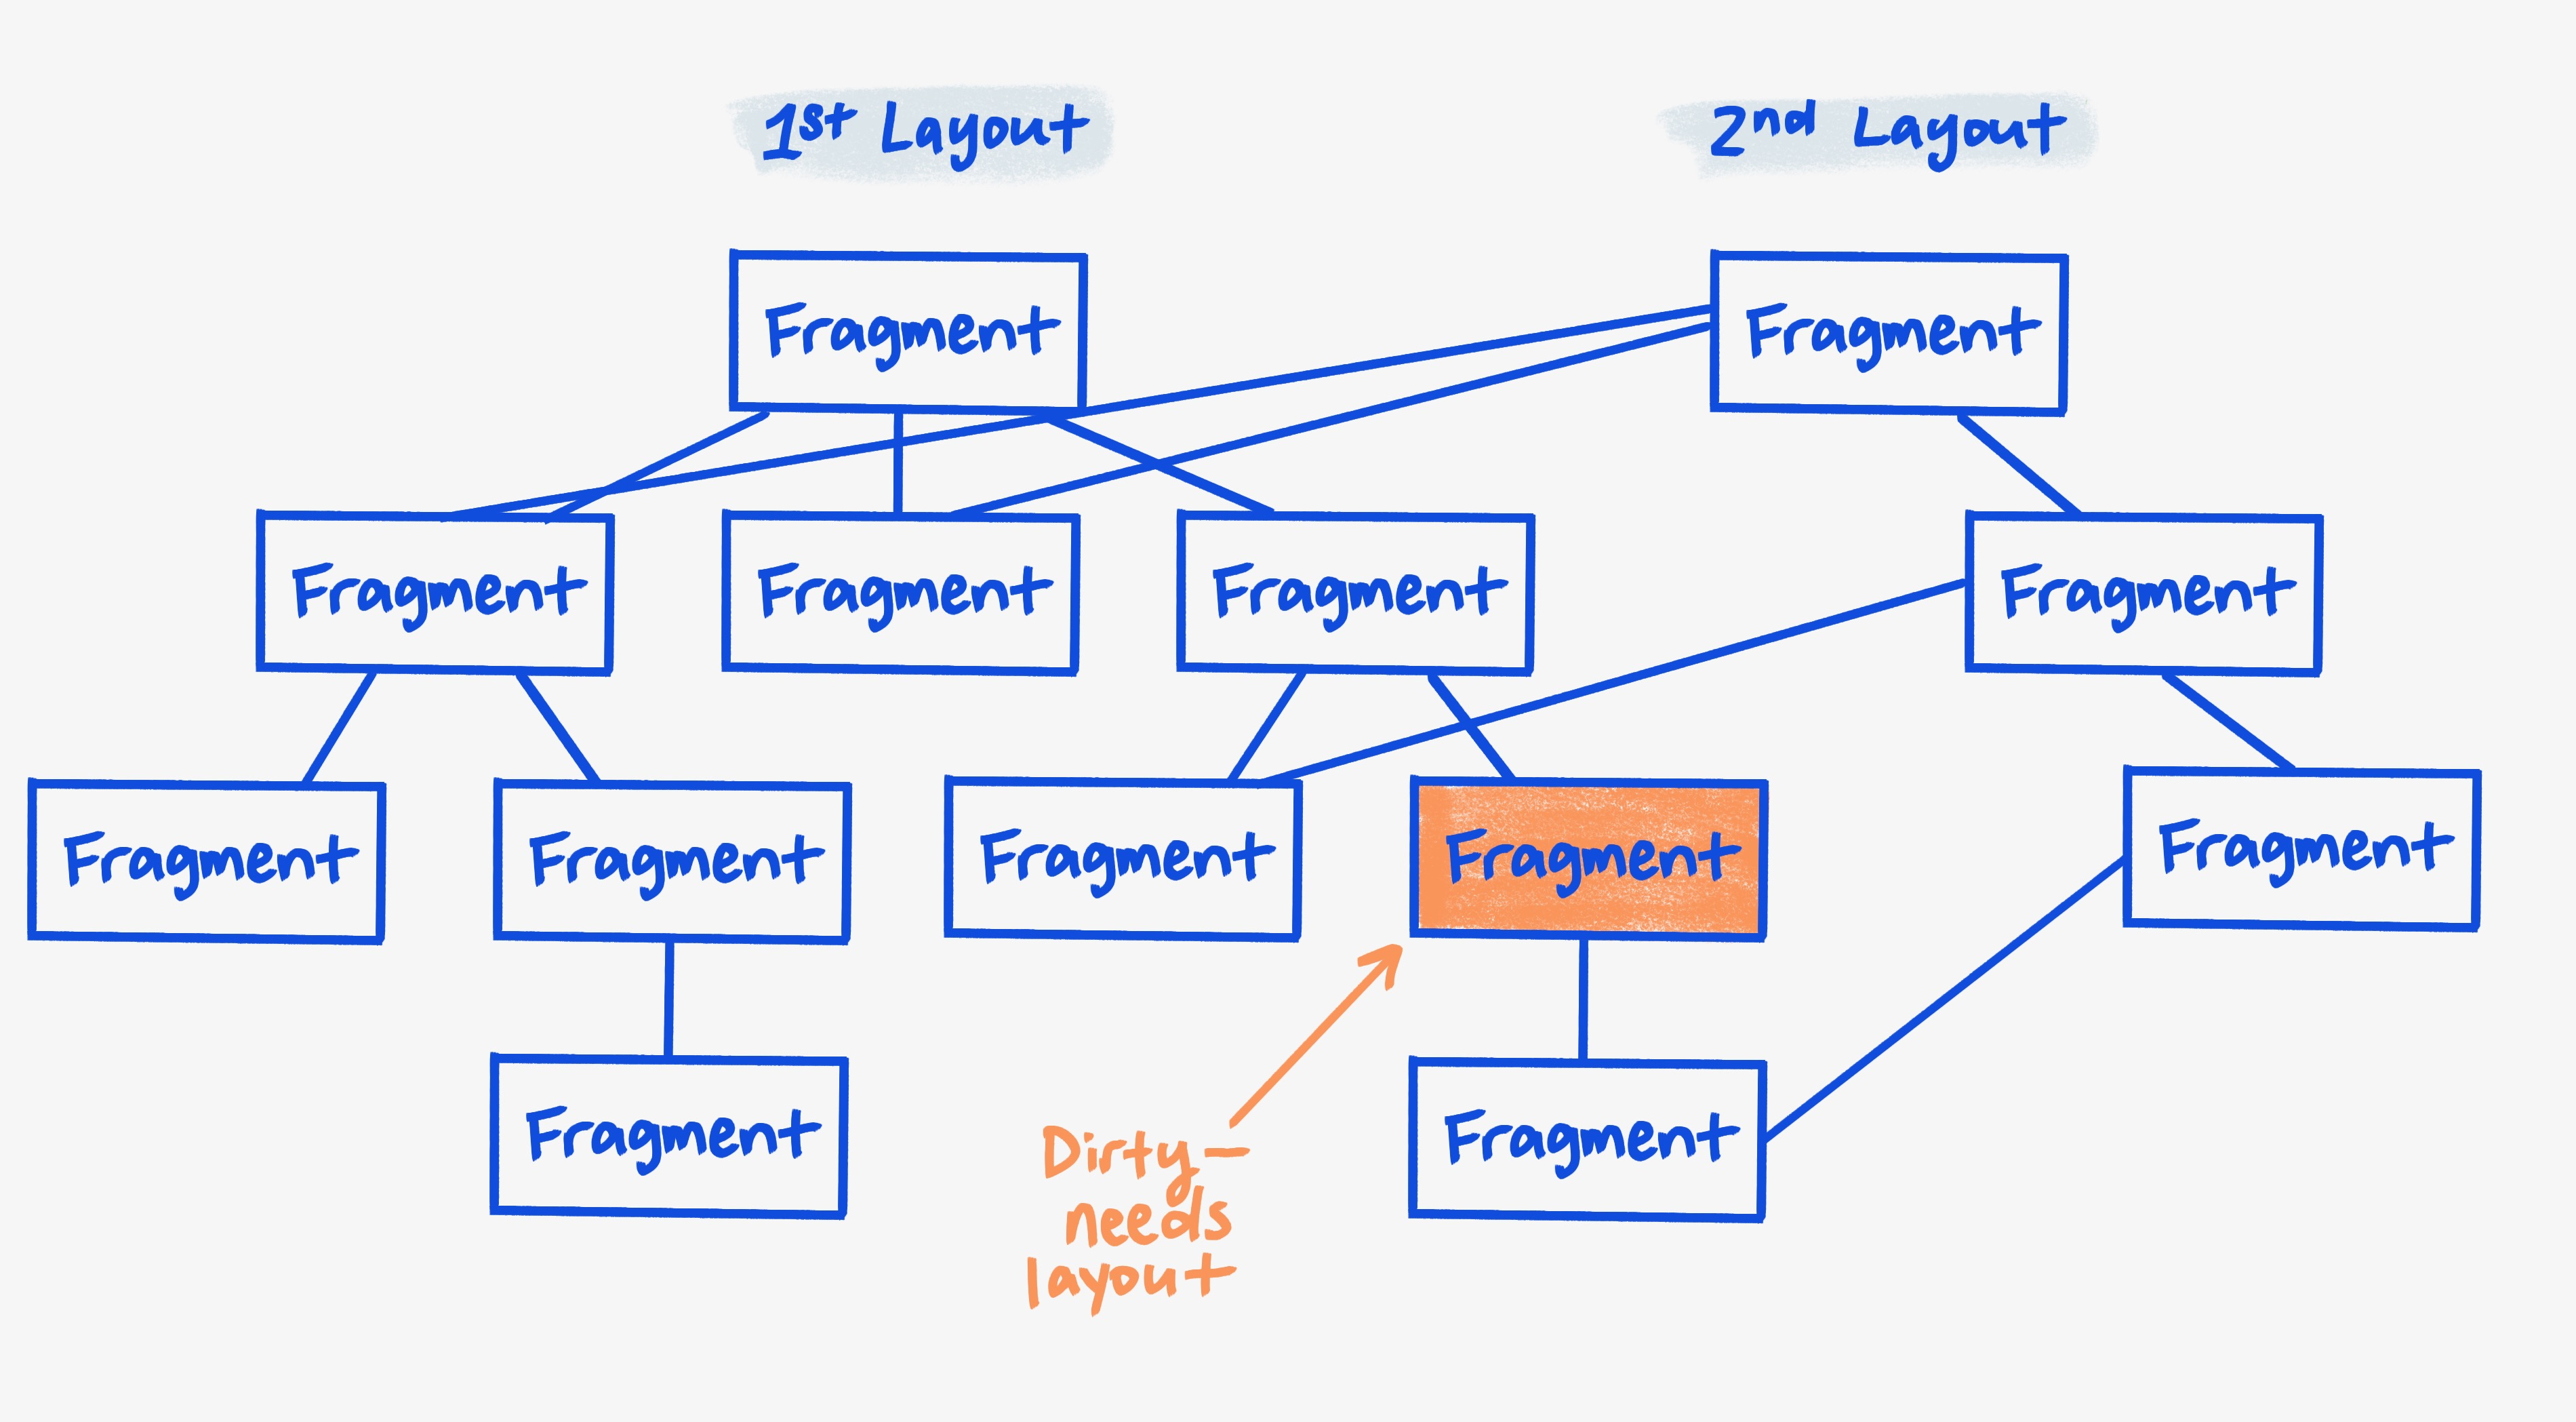 Representation of the fragments in each tree, with one fragment being marked as needing layout.